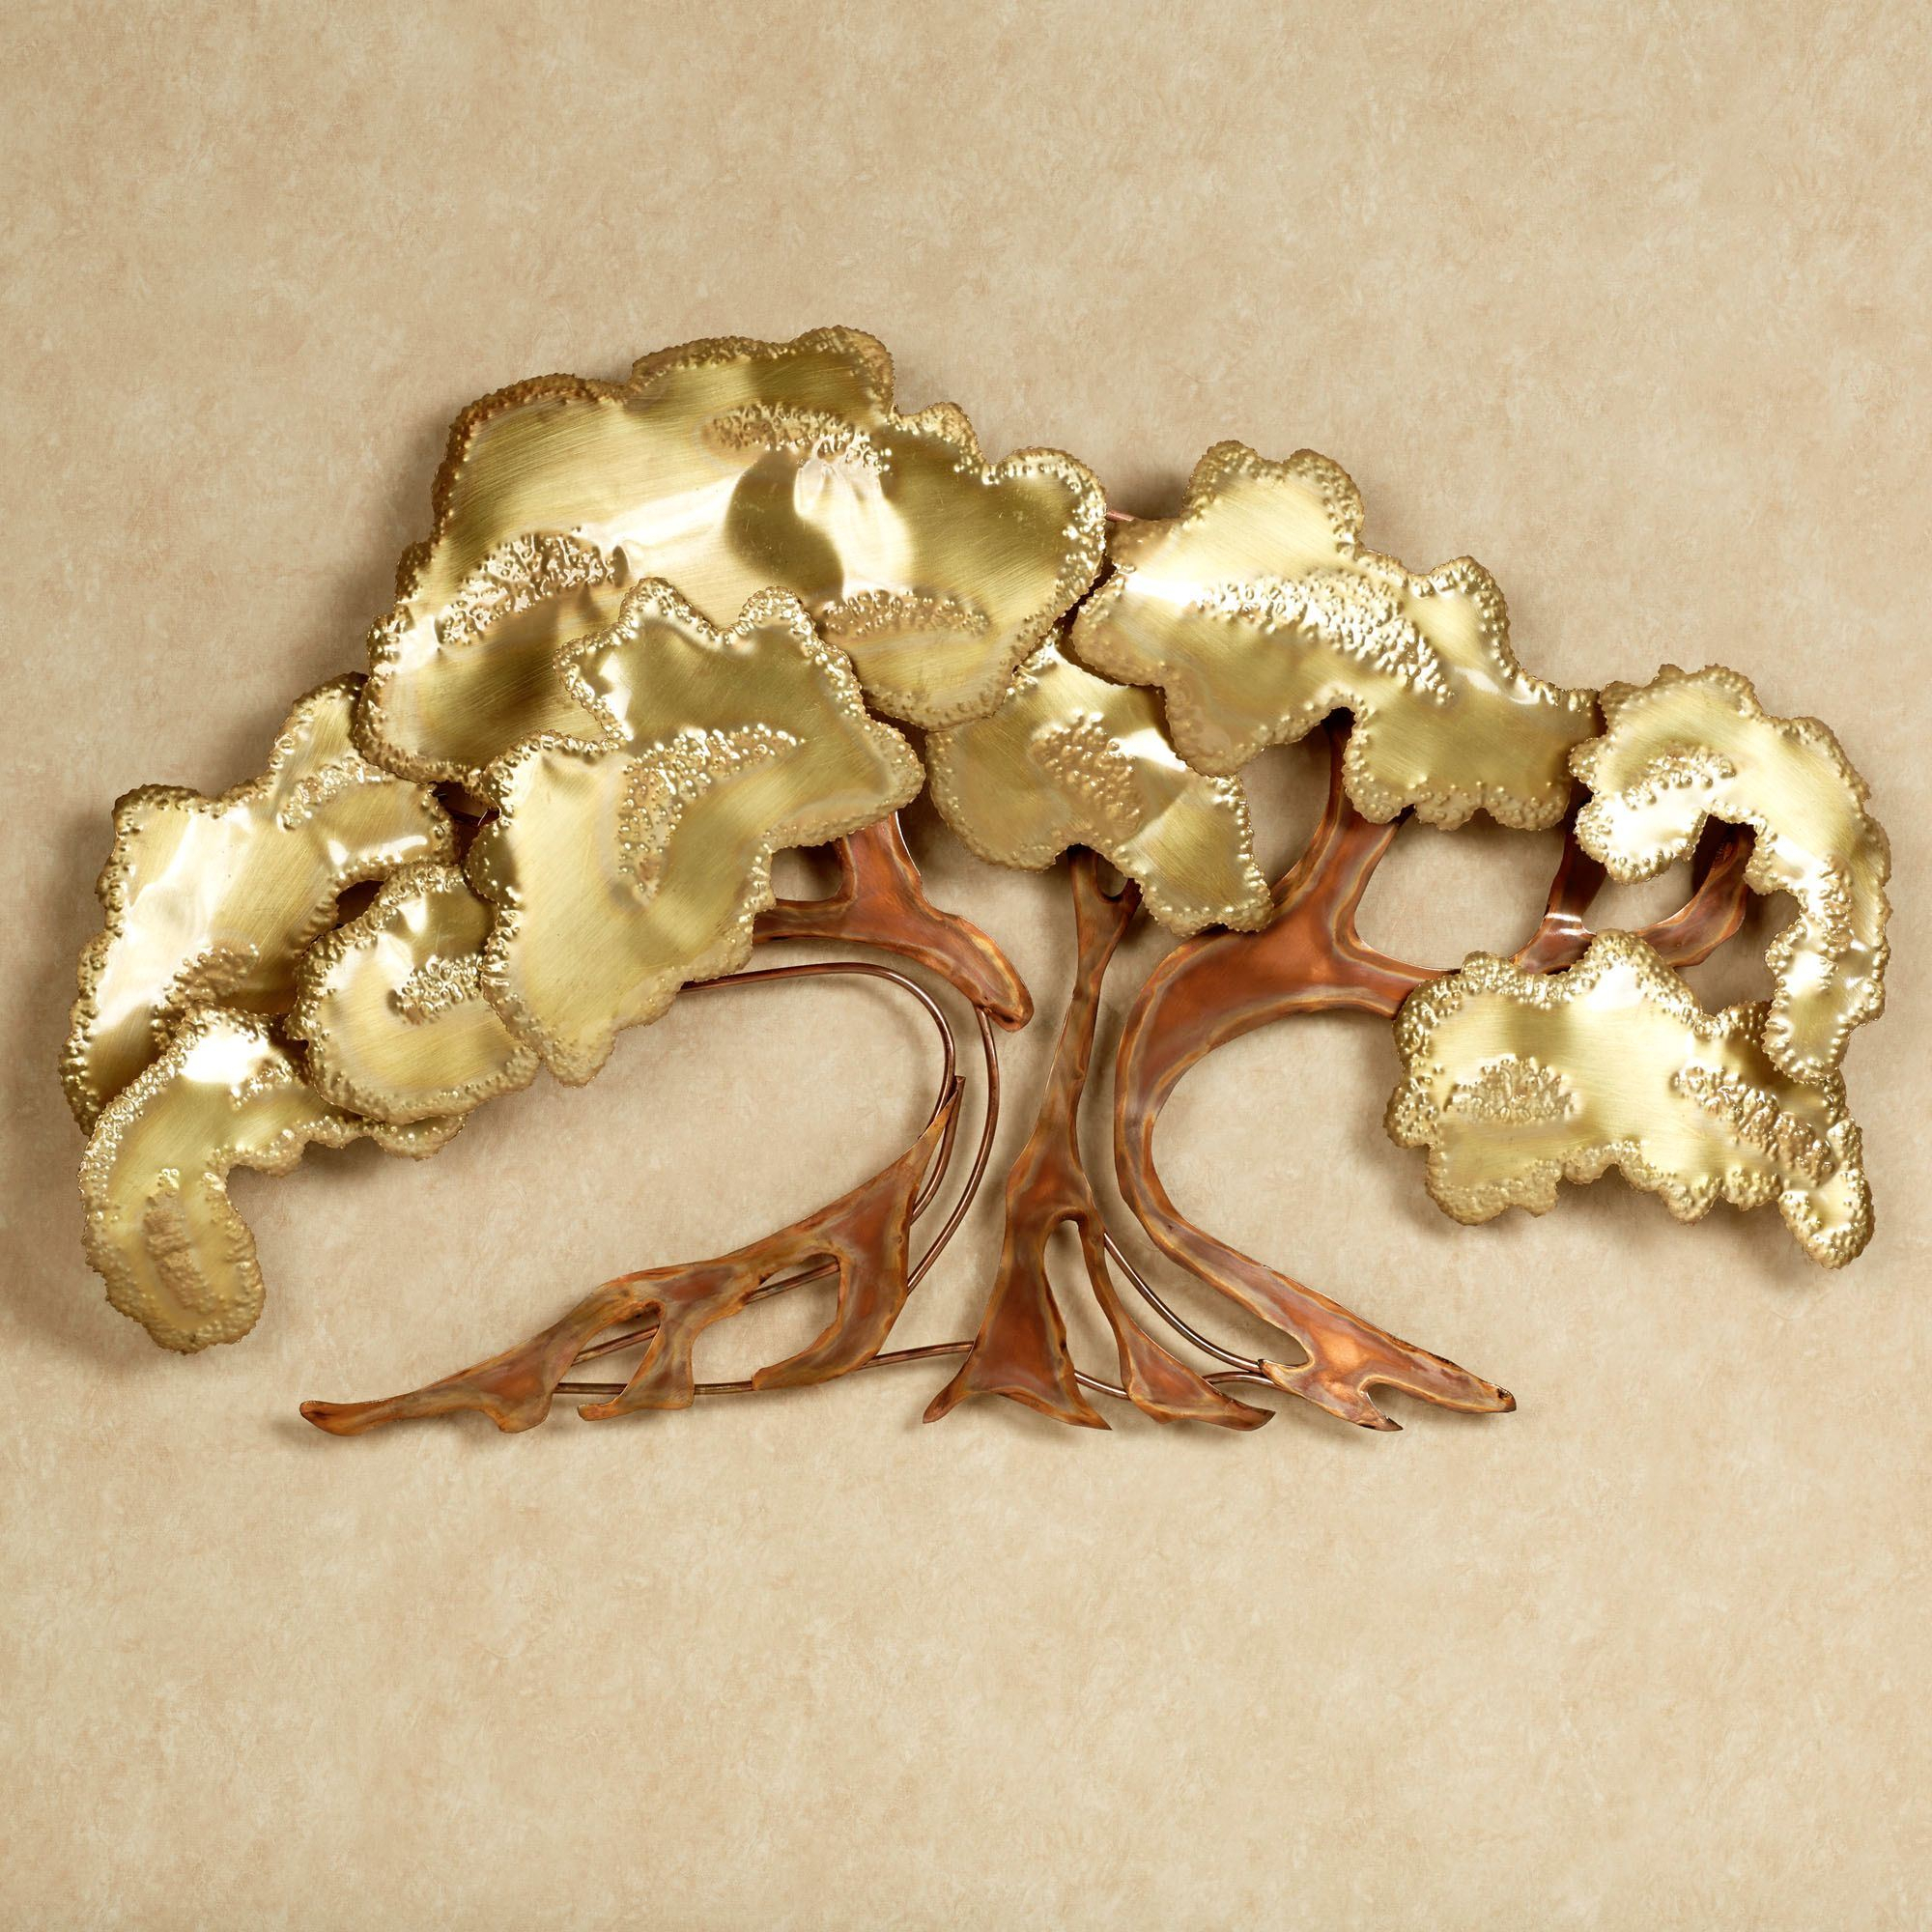 Leaves Metal Sculpture Wall Decor For Best And Newest Zen Tree Metal Wall Sculpture (View 8 of 20)